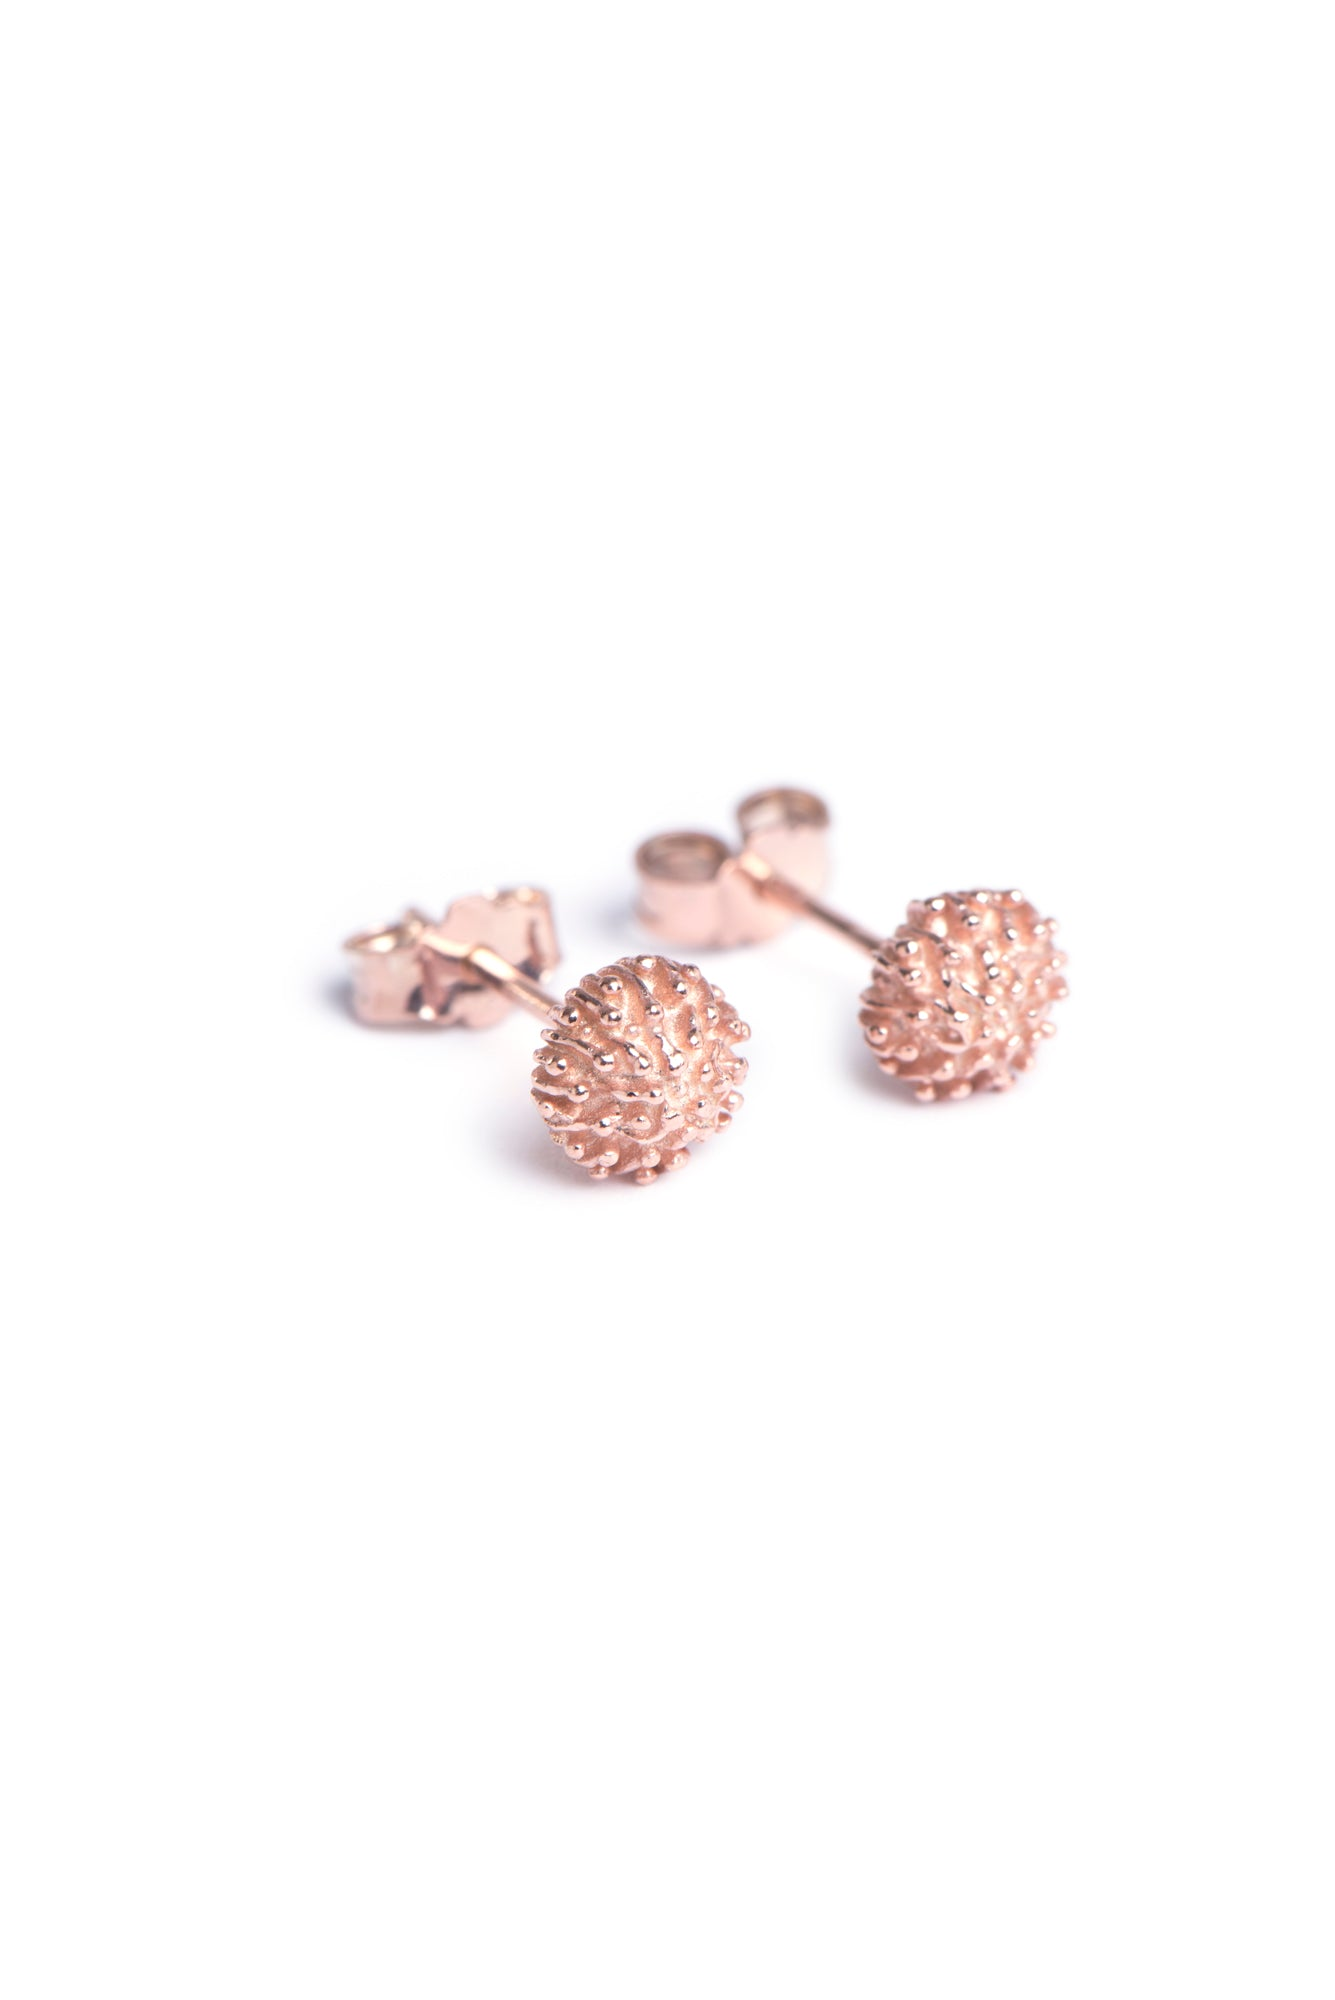 Protea Pincushion Studs Rose Gold Plated